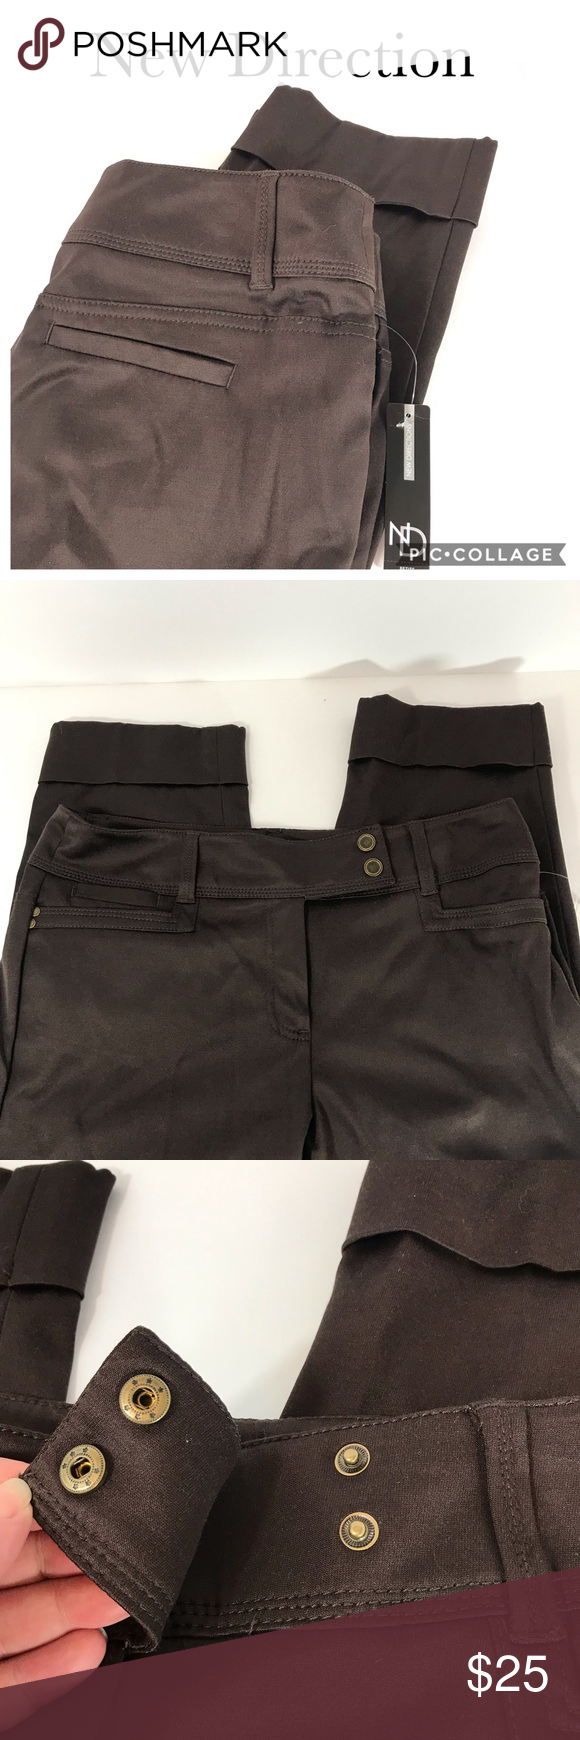 How To Hem Pants With A Cuff Nwt New Direction Shiny Chocolate Cuff Pants 8p Cuffed Pants Pants How To Hem Pants